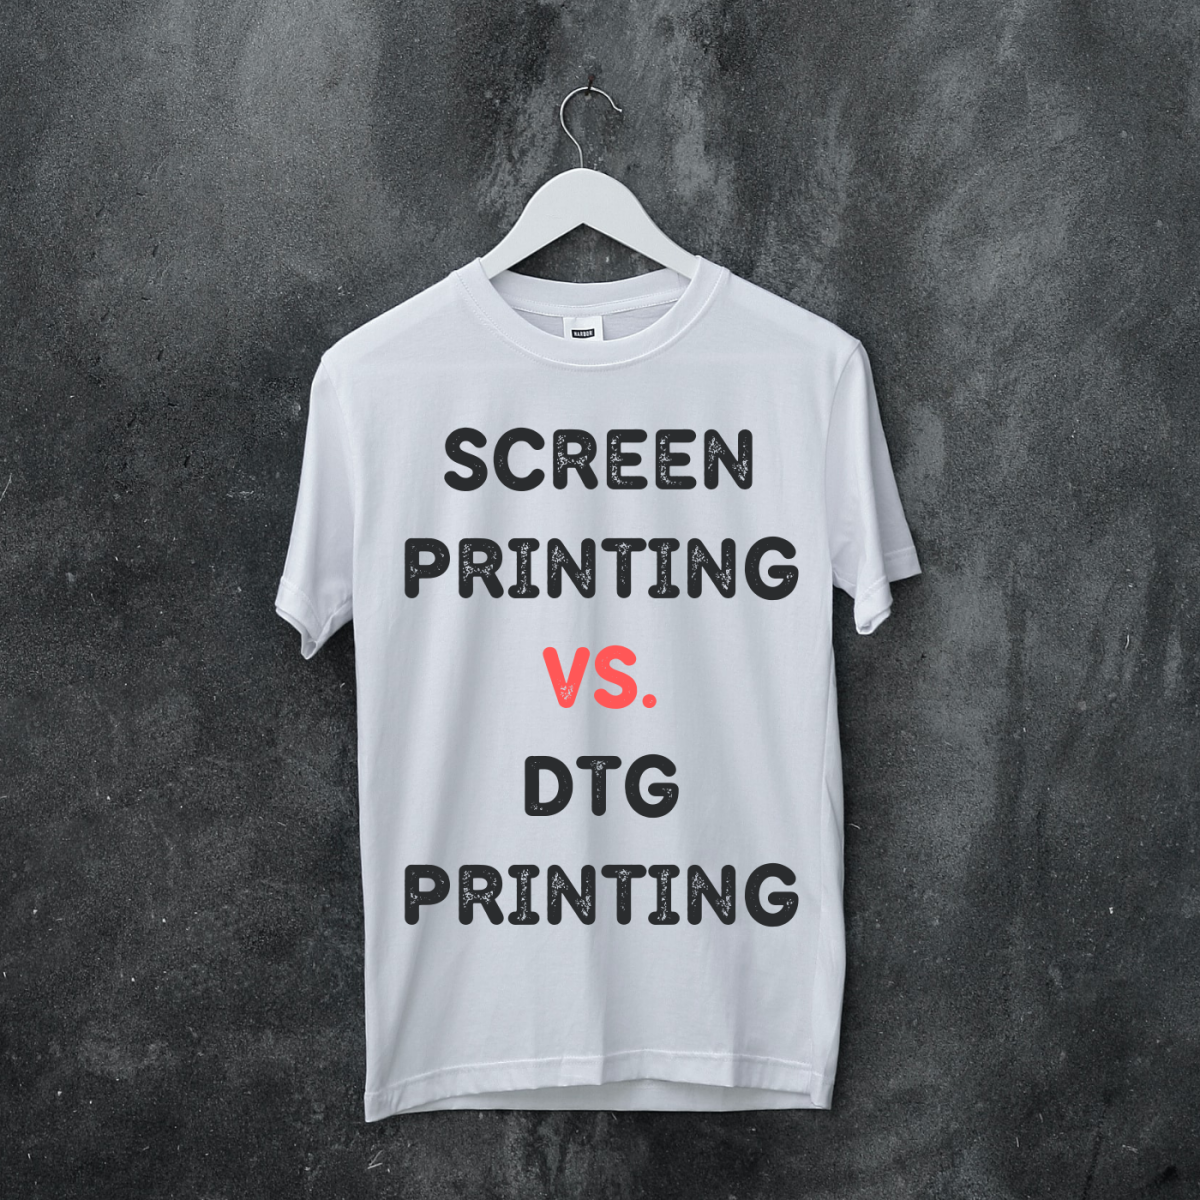 Which is better for printing custom t-shirts: screen printing or DTG printing? Well, the answer is: It depends. Learn more about these printing methods here.